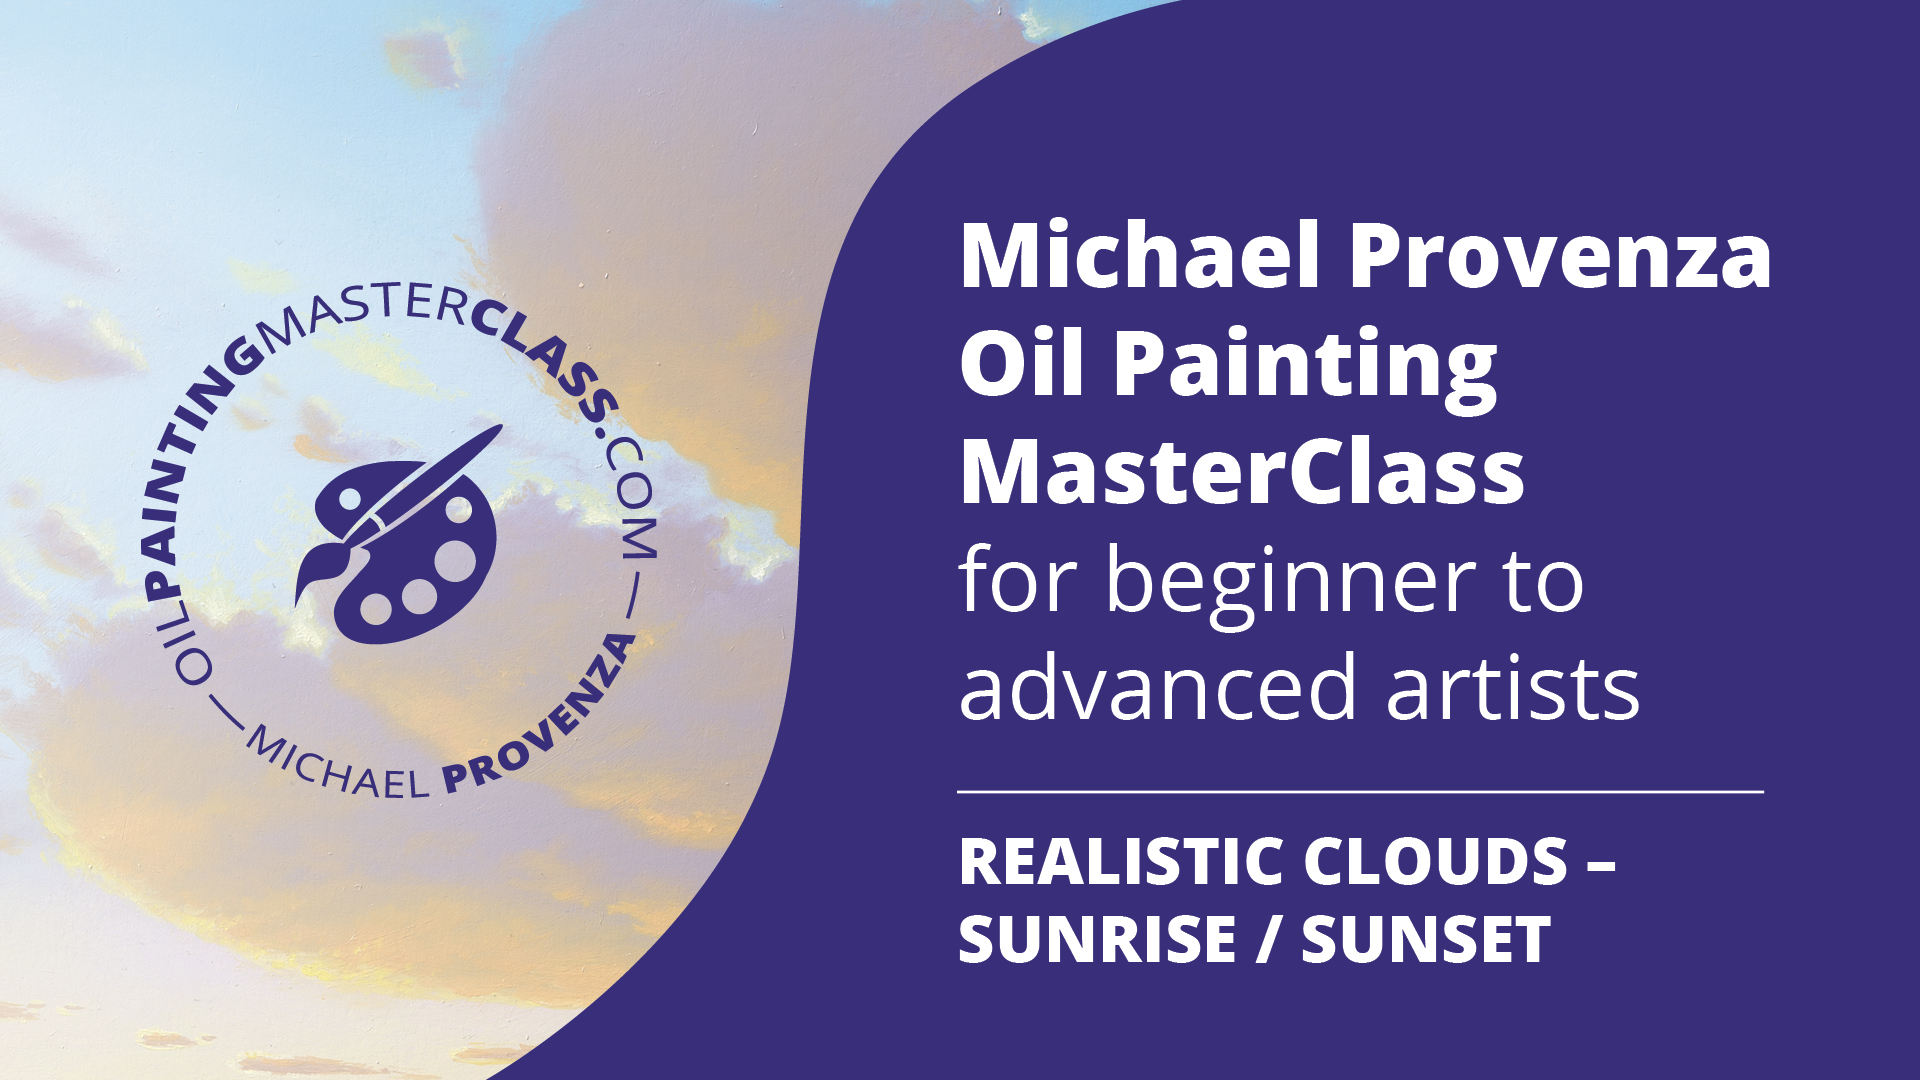 Michael Provenza Oil Painting MasterClass Realistic Clouds Sunrise Sunset